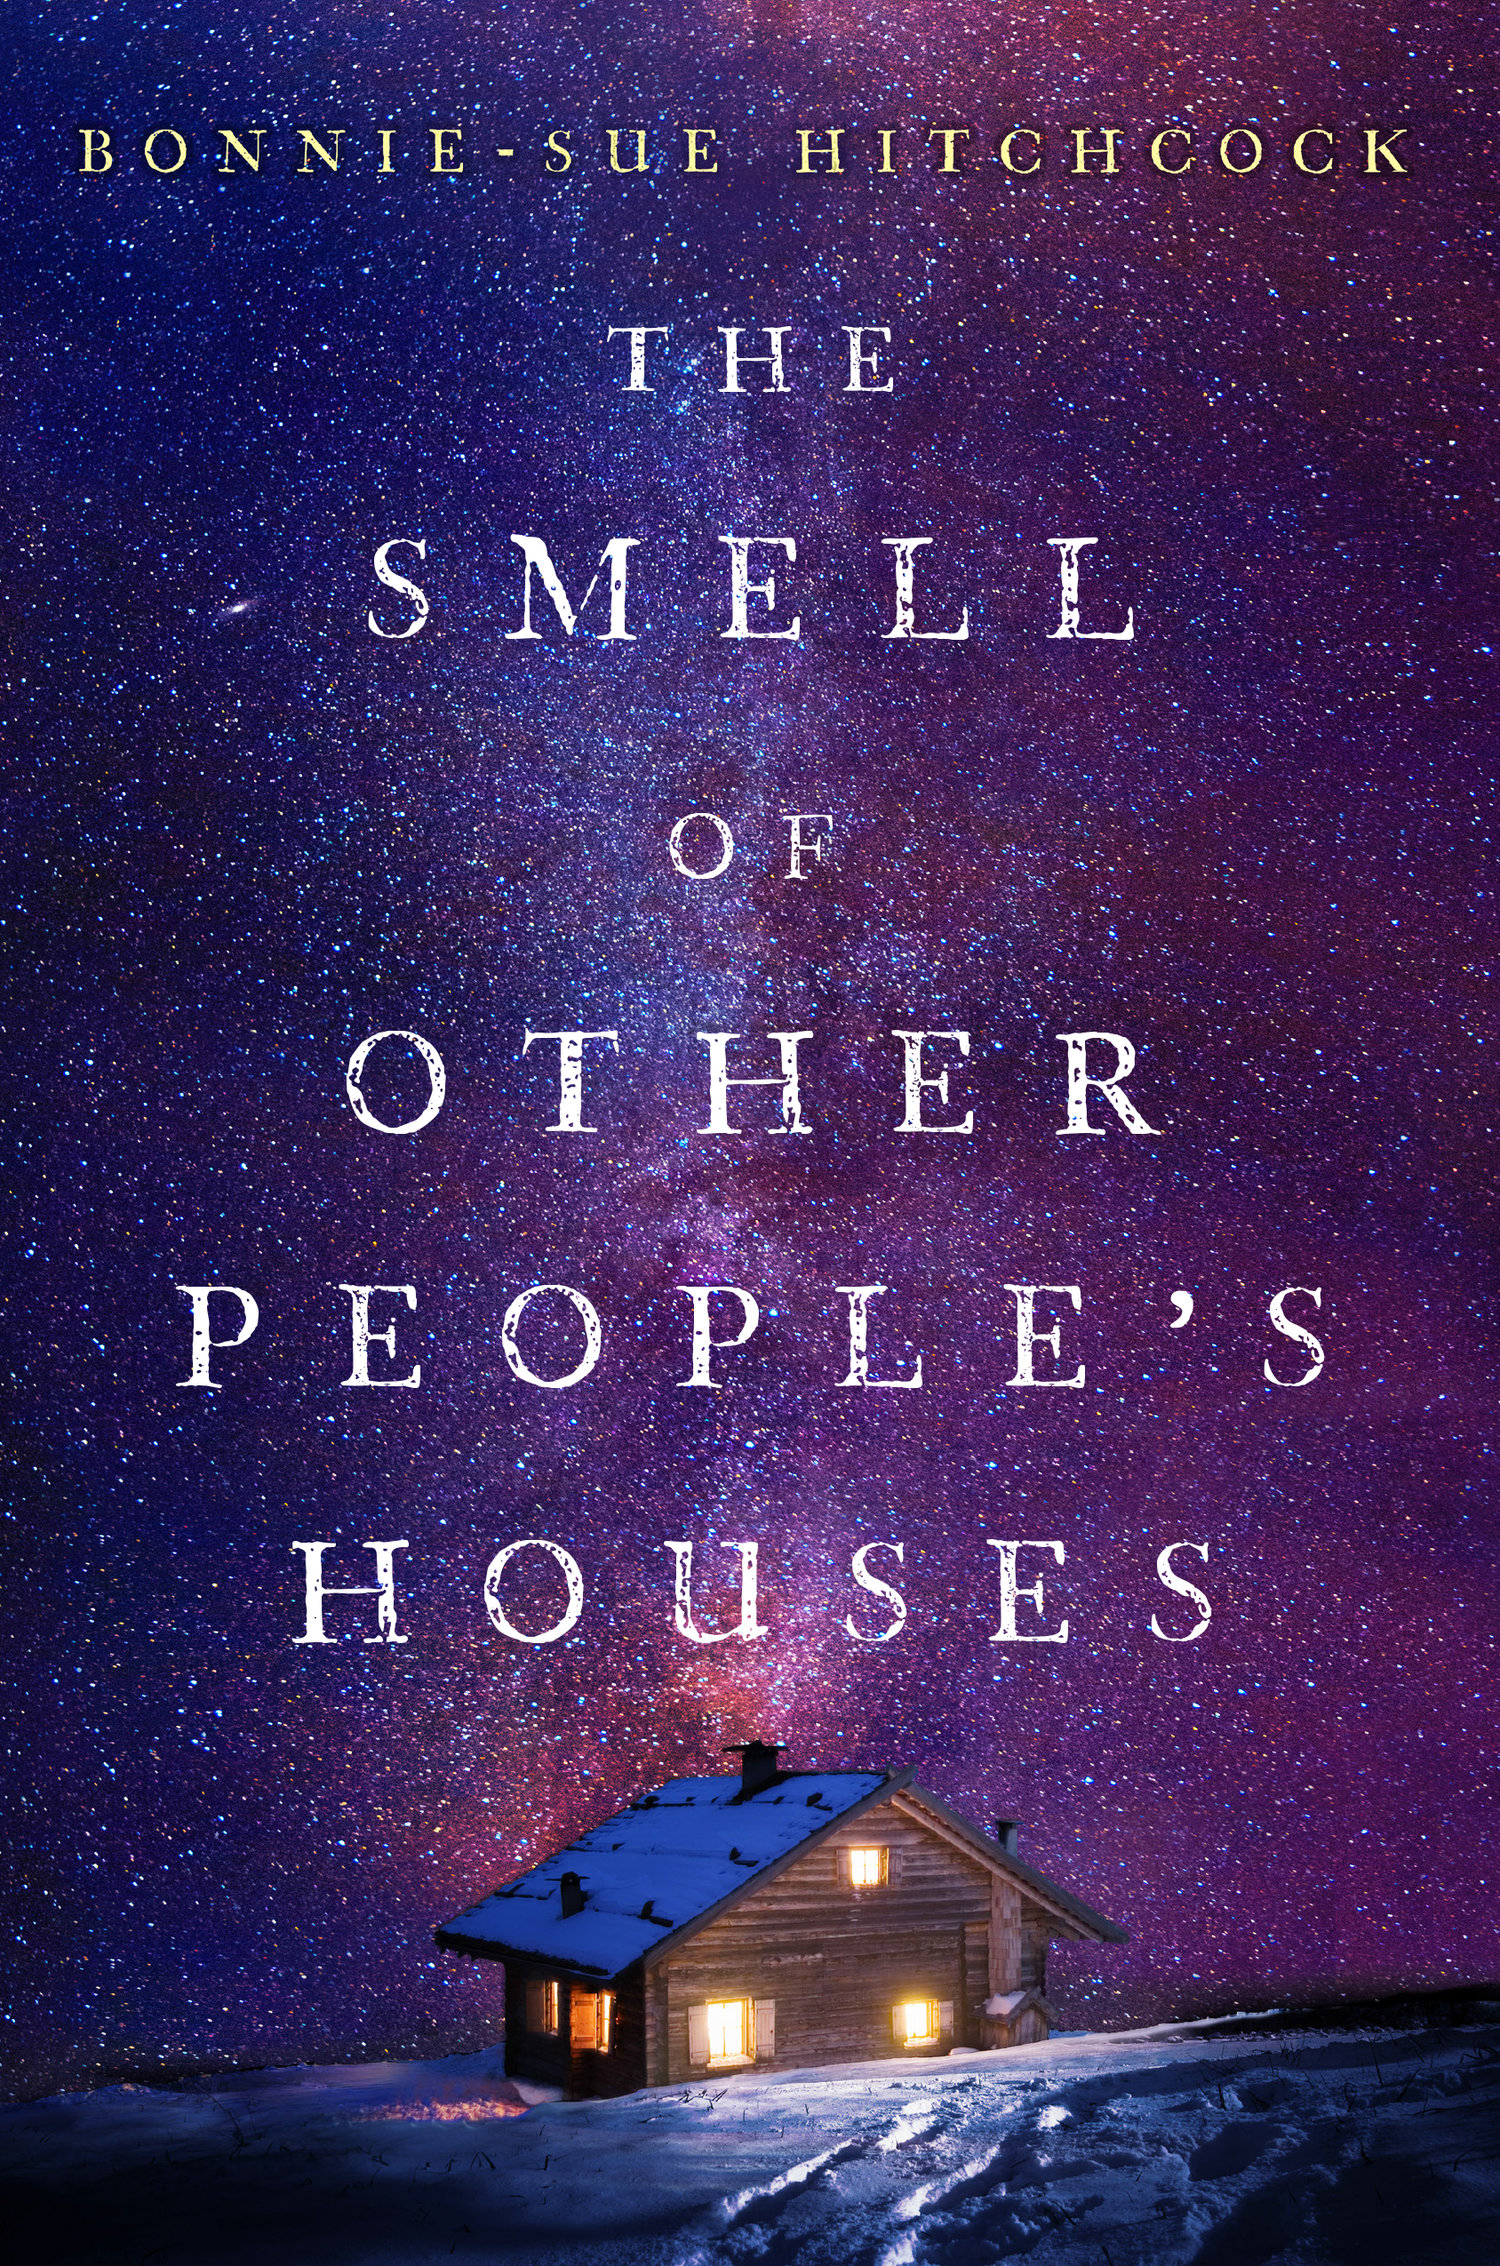 Smell+of+Other+Peoples+Houses8-final.jpg